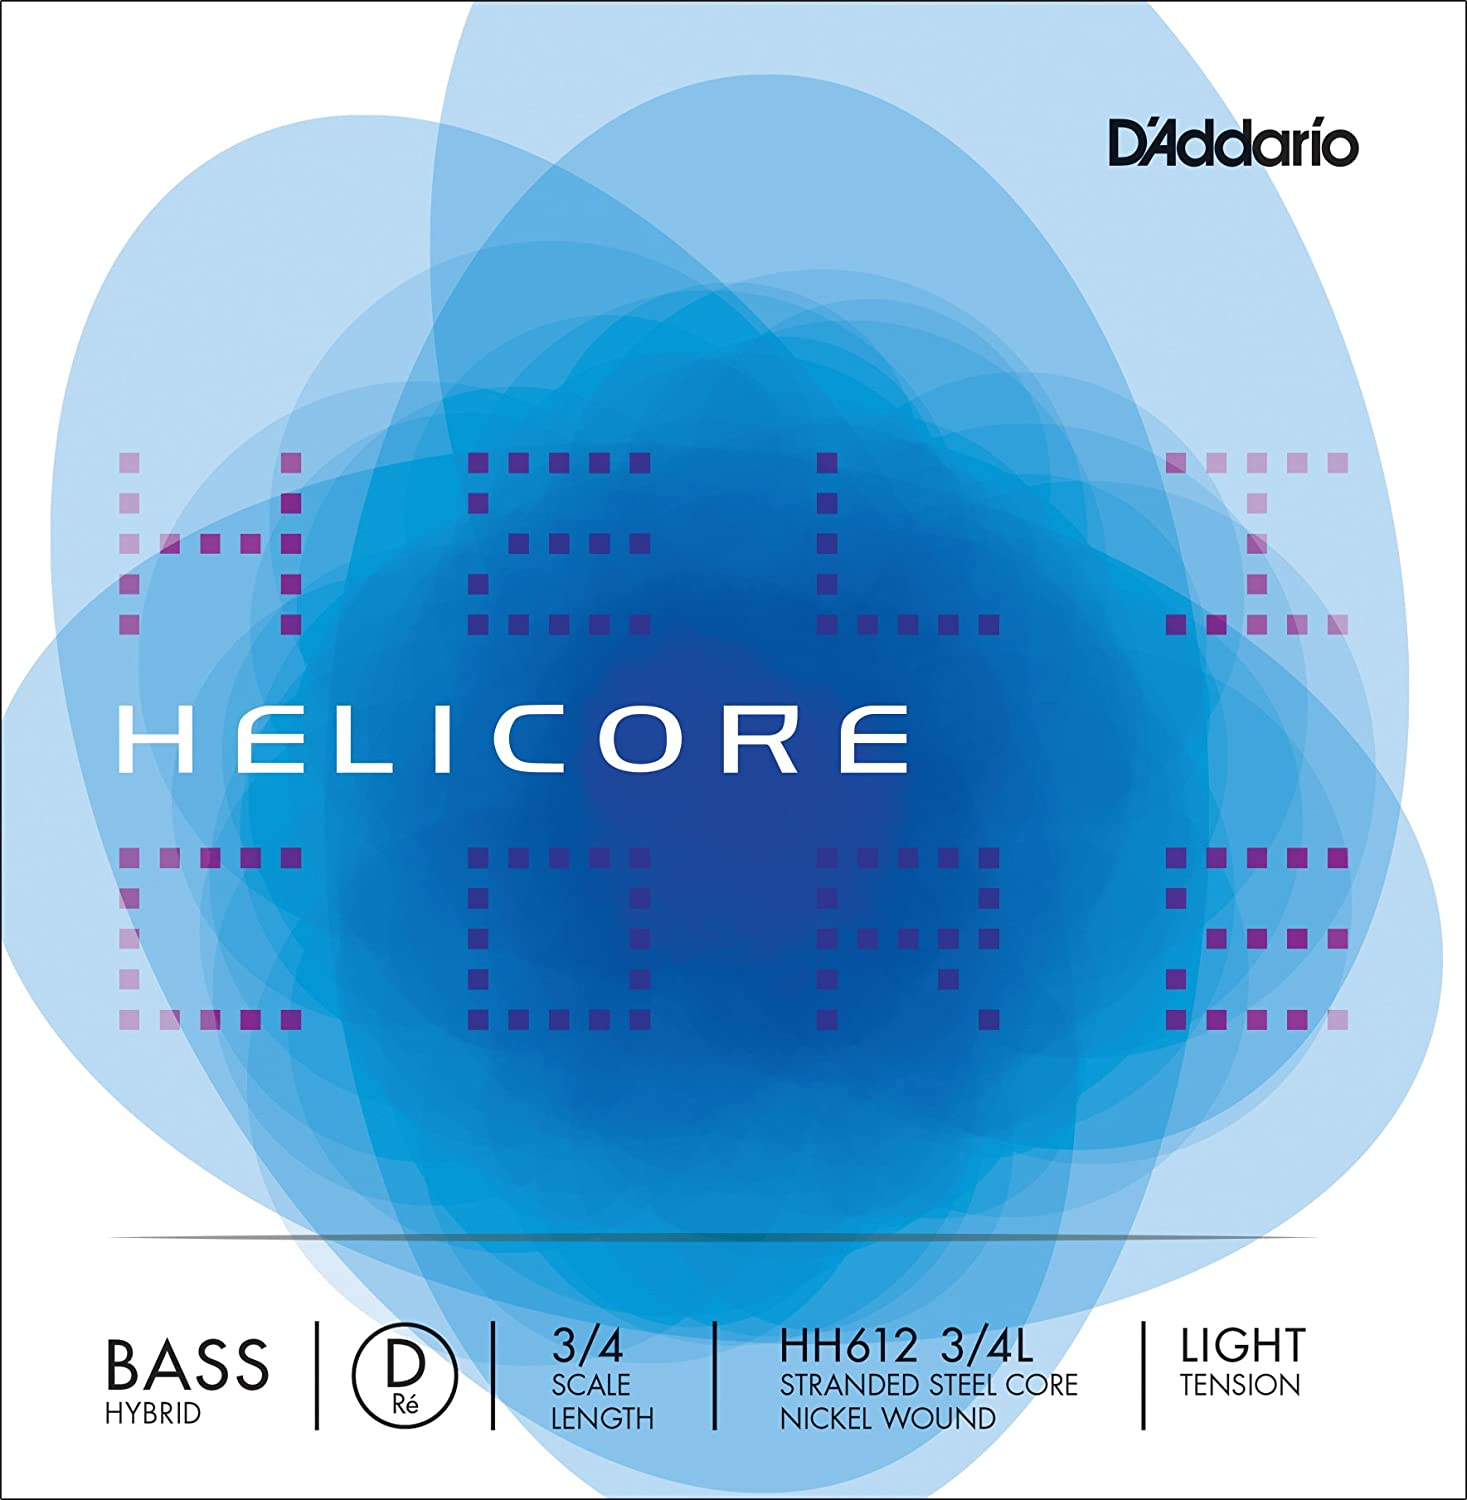 D'Addario Helicore Hybrid Bass Single D String, 3/4 Scale, Medium Tension D'Addario HH612 3/4M